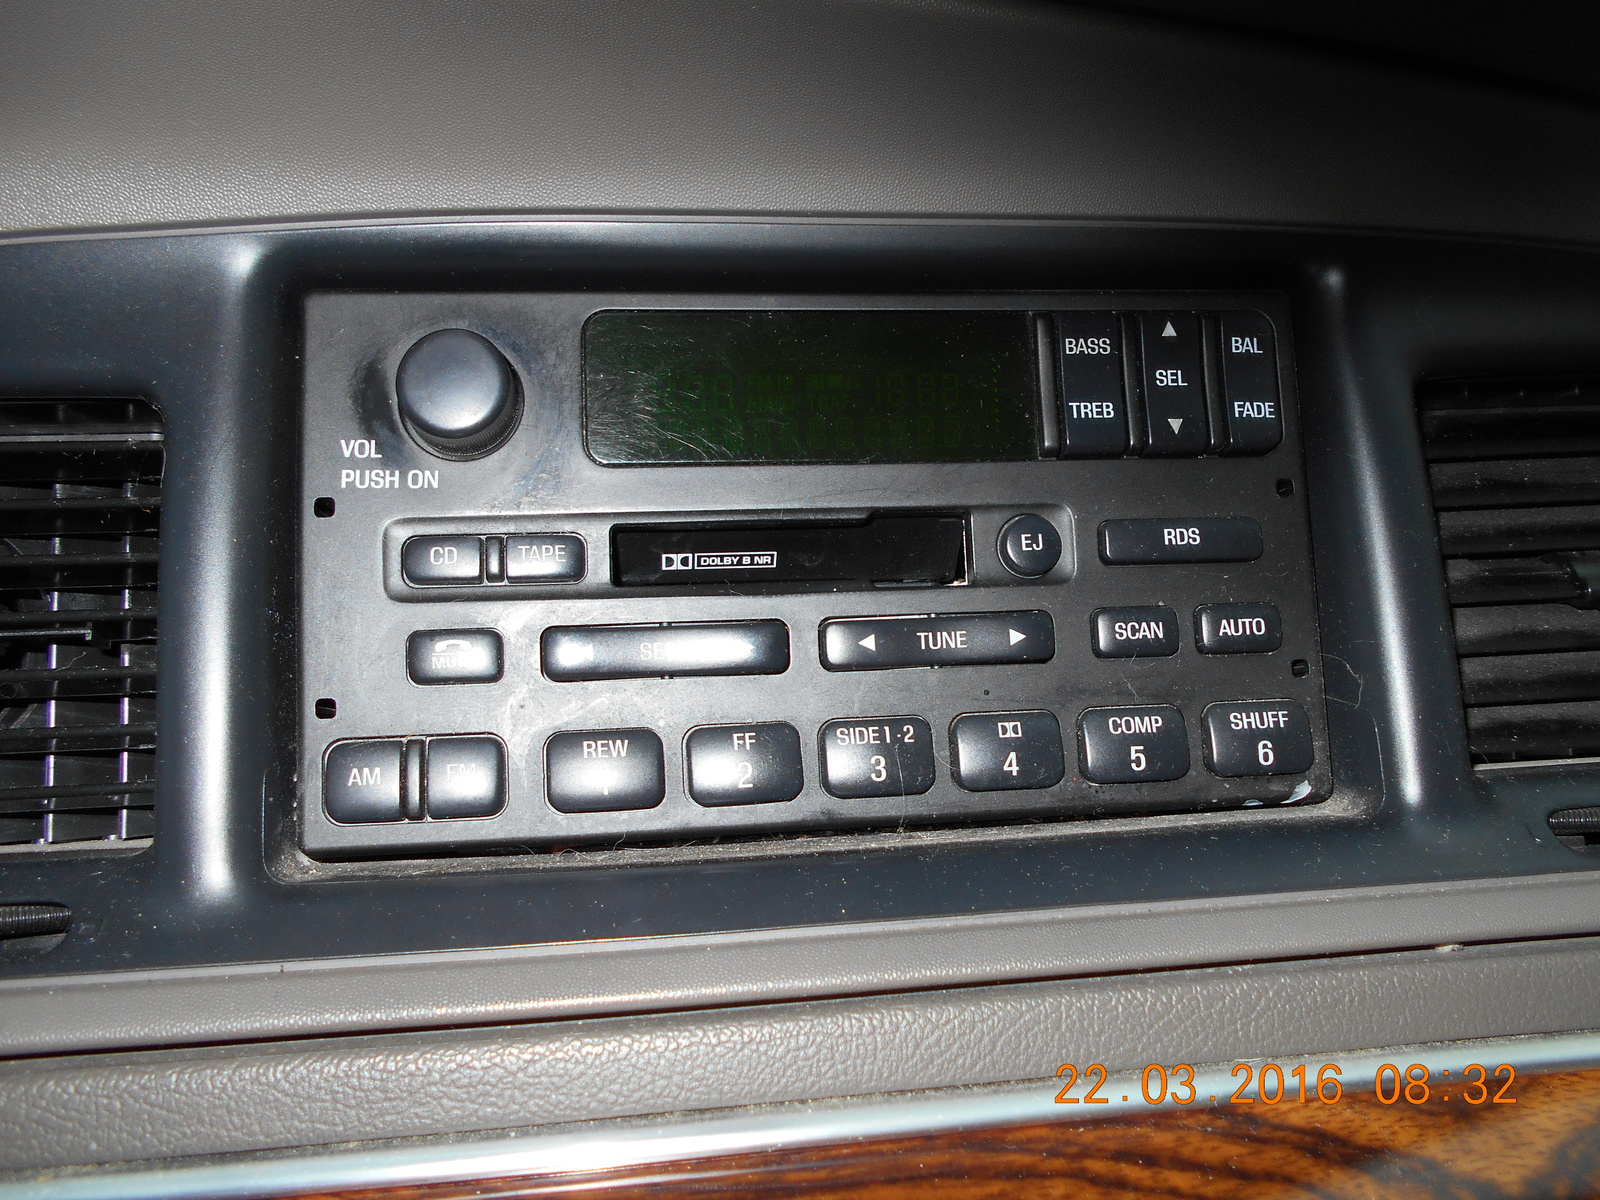 When cd pressed display reads no cddj does this button control optional cd changer should there be a connector in the trunk